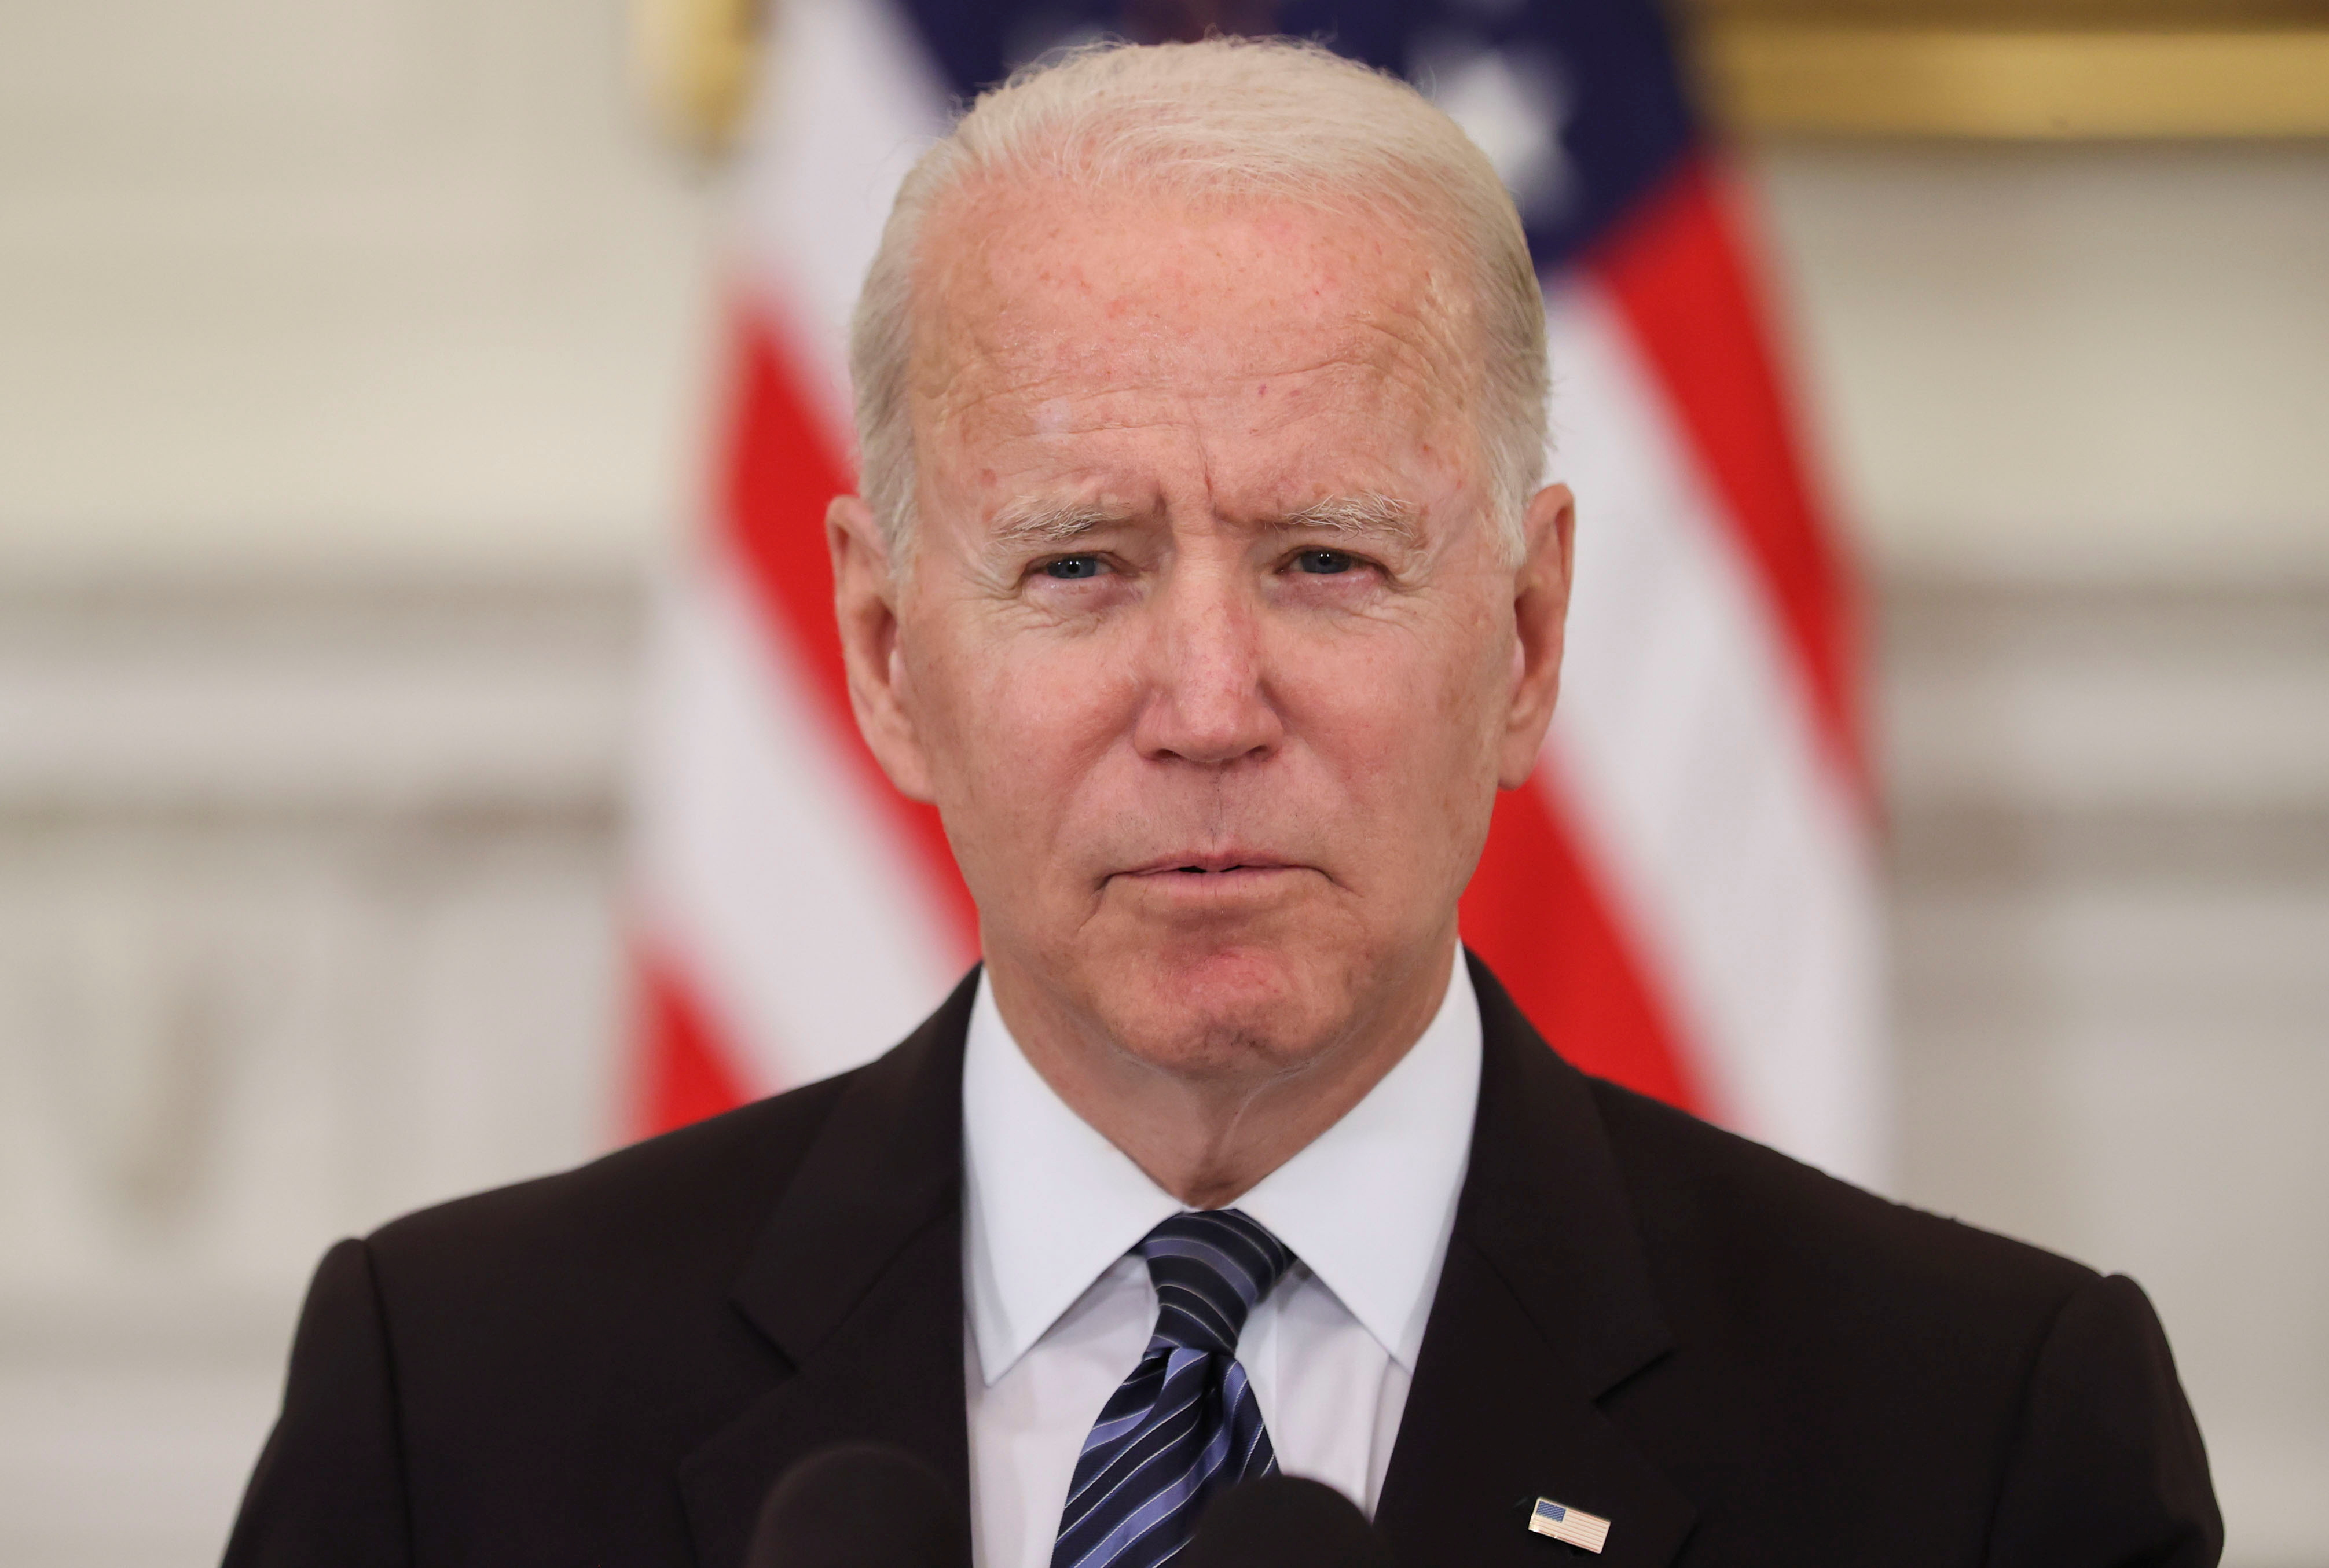 President Biden delivers remarks after a roundtable discussion with advisors on steps to curtail U.S. gun violence, at the White House in Washington, June 23, 2021. REUTERS/Jonathan Ernst